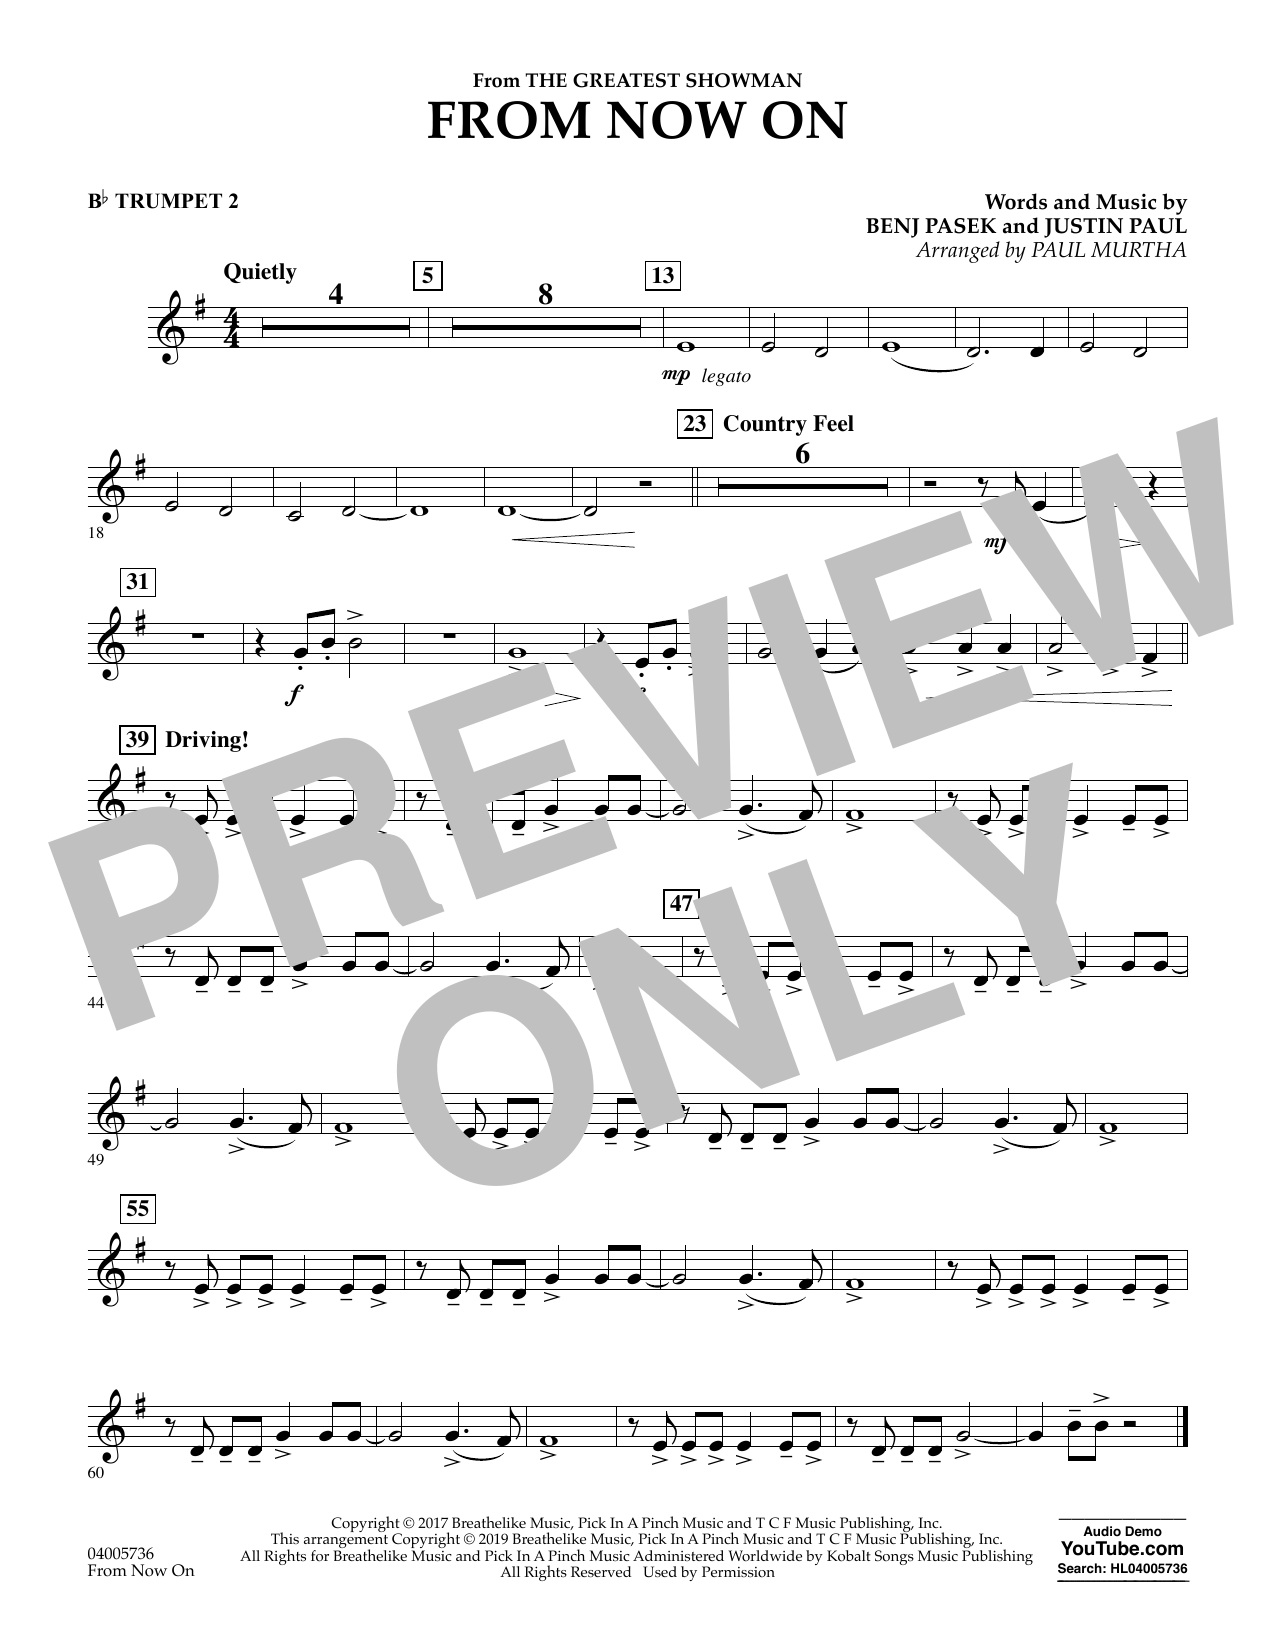 From Now On (from The Greatest Showman) (arr. Paul Murtha) - Bb Trumpet 2 (Concert Band)